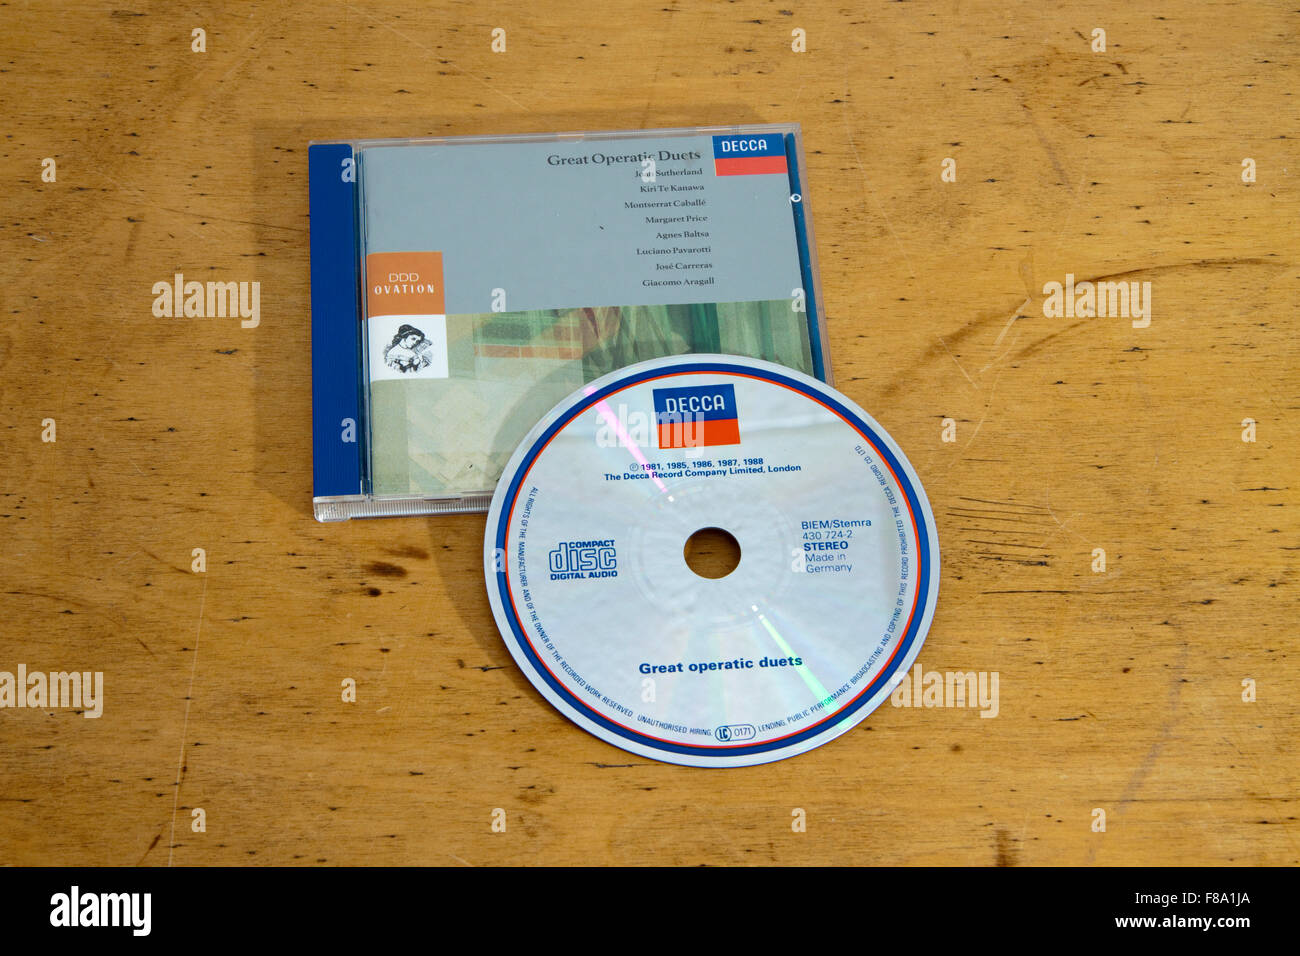 Compact disk/disc and case of Great Operatic Duets - Stock Image